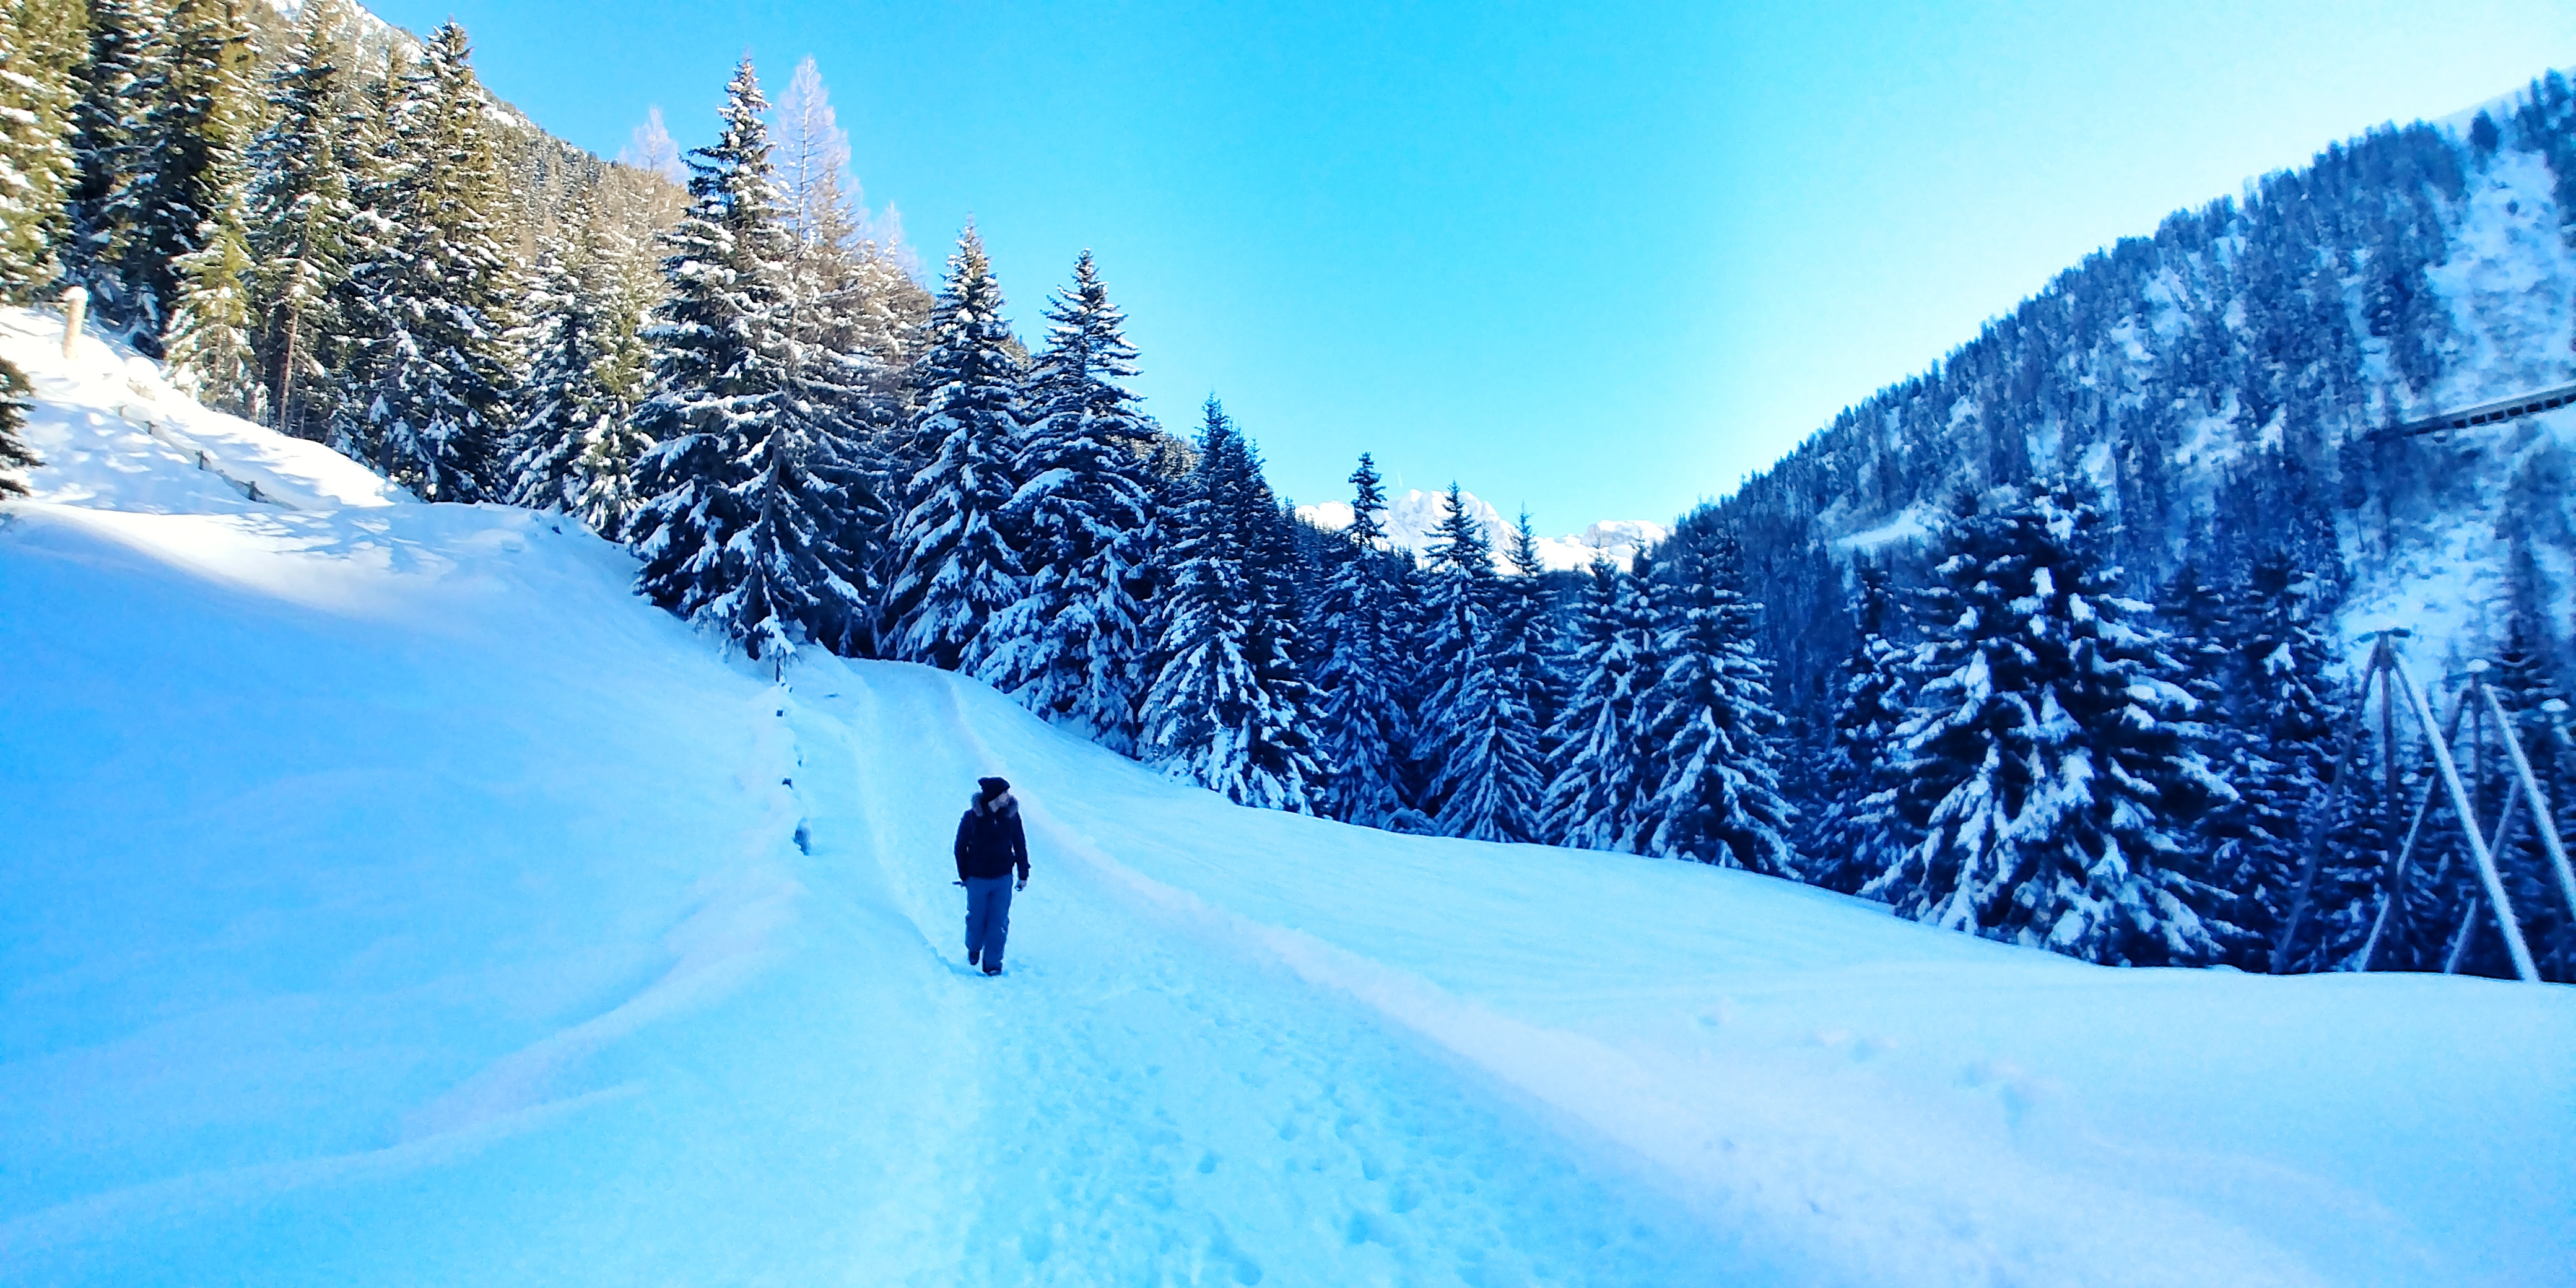 Walking through the pine forest in the French Alps